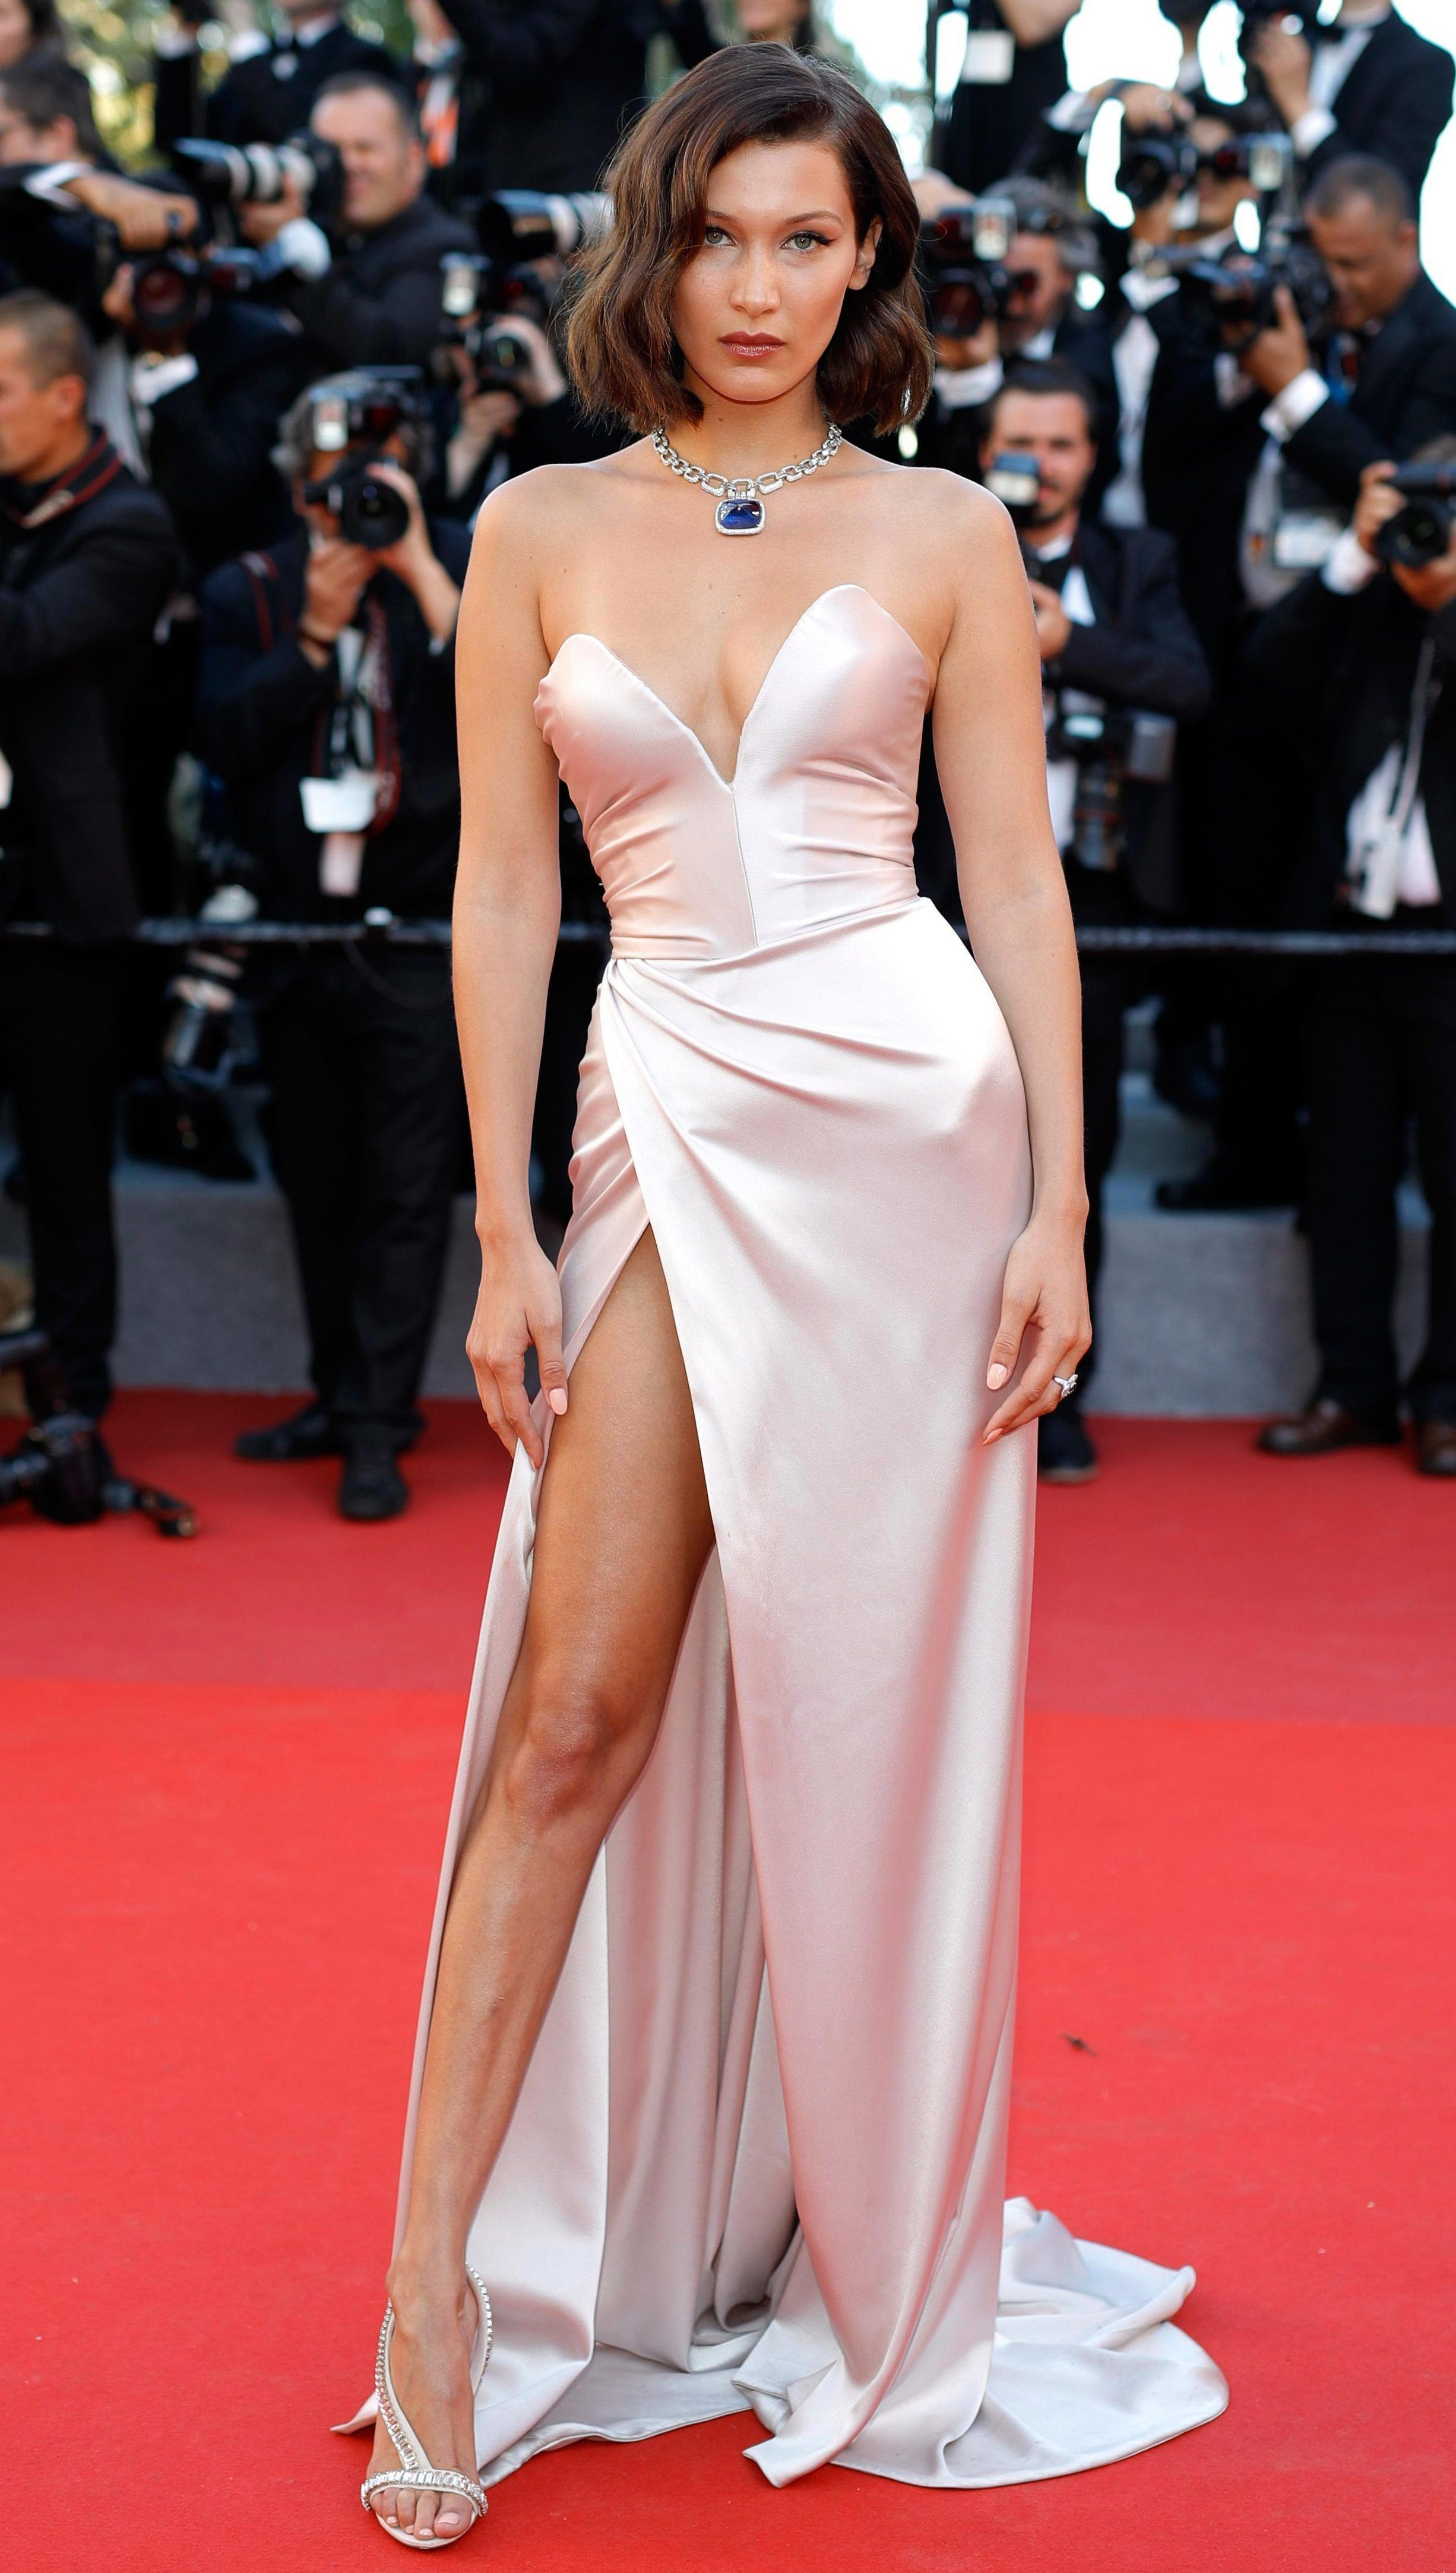 9fe04b203e1e6 Bella Hadid - 70th Annual Cannes Film Festival in Cannes, France May 17 2017  - {151 Images}